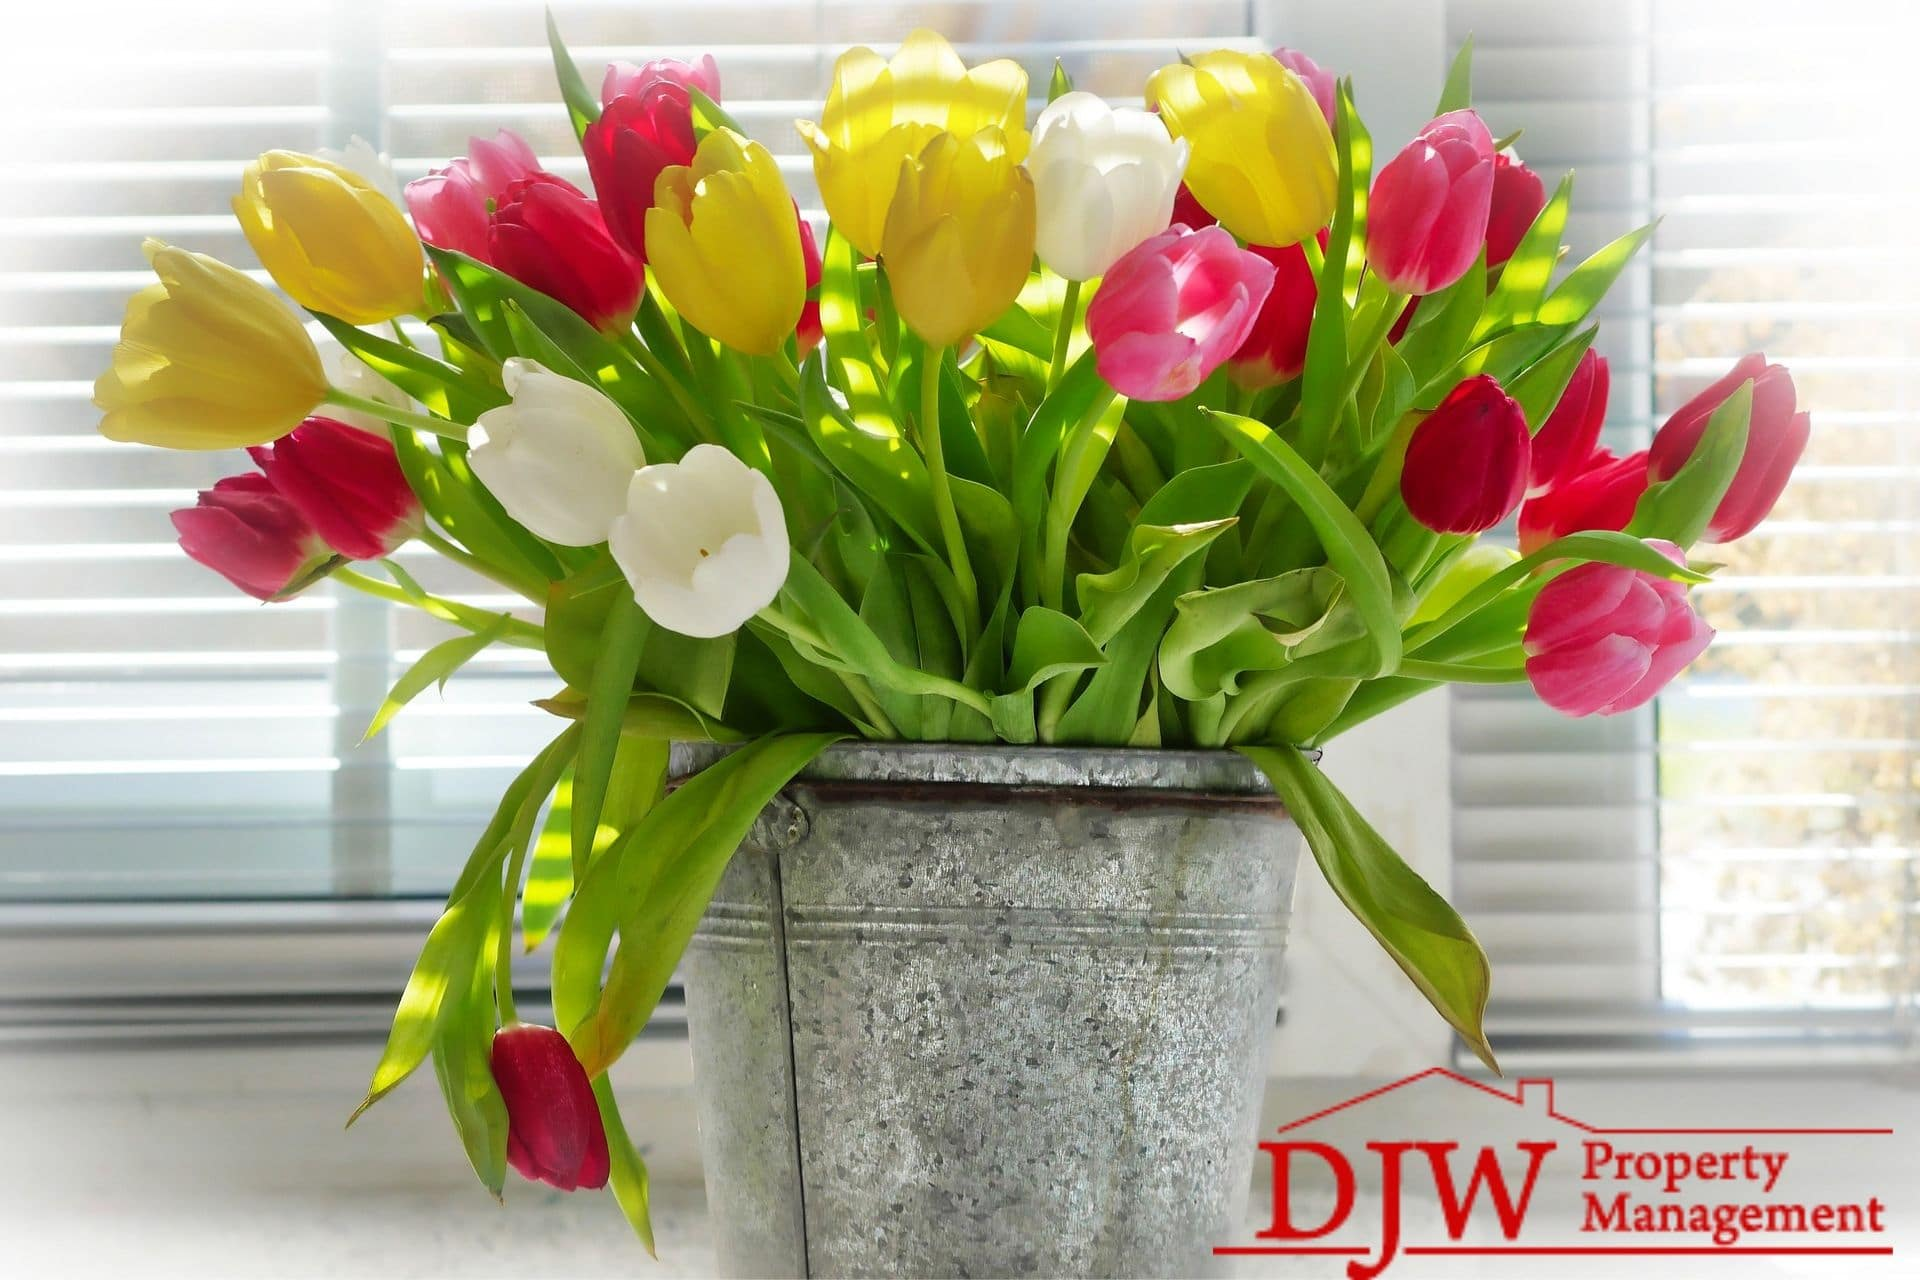 Beautiful vase of flowers, perfect for displaying after spring cleaning.